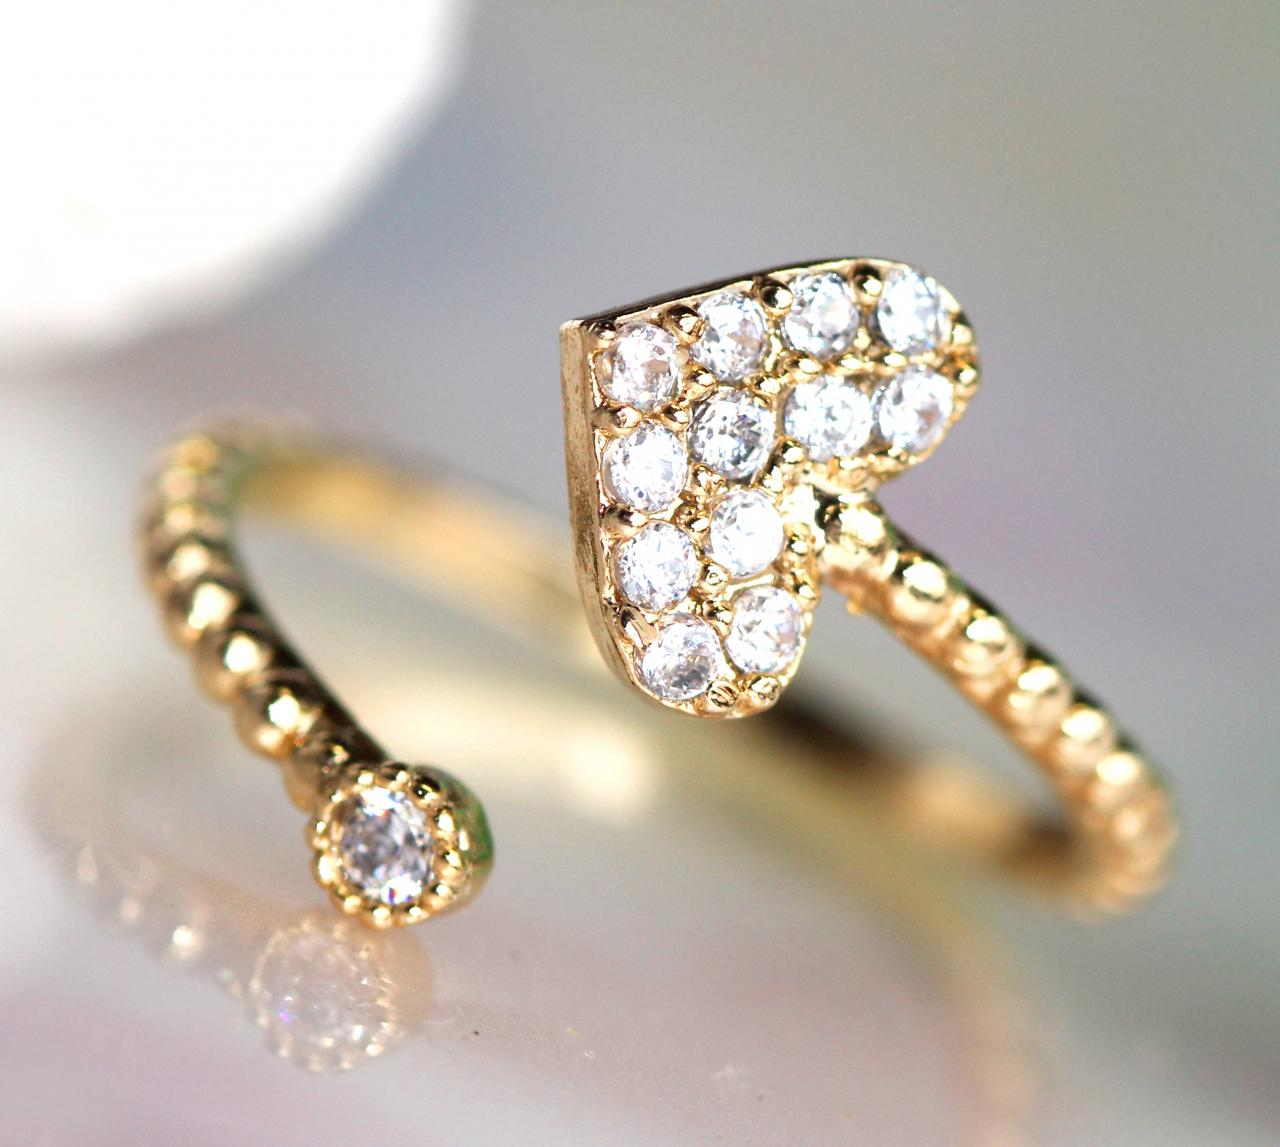 (Gold one) Adjustable Lovely Gold Plated Heart-shape Ring/ Small But Beautiful Enough To Express Your Purity